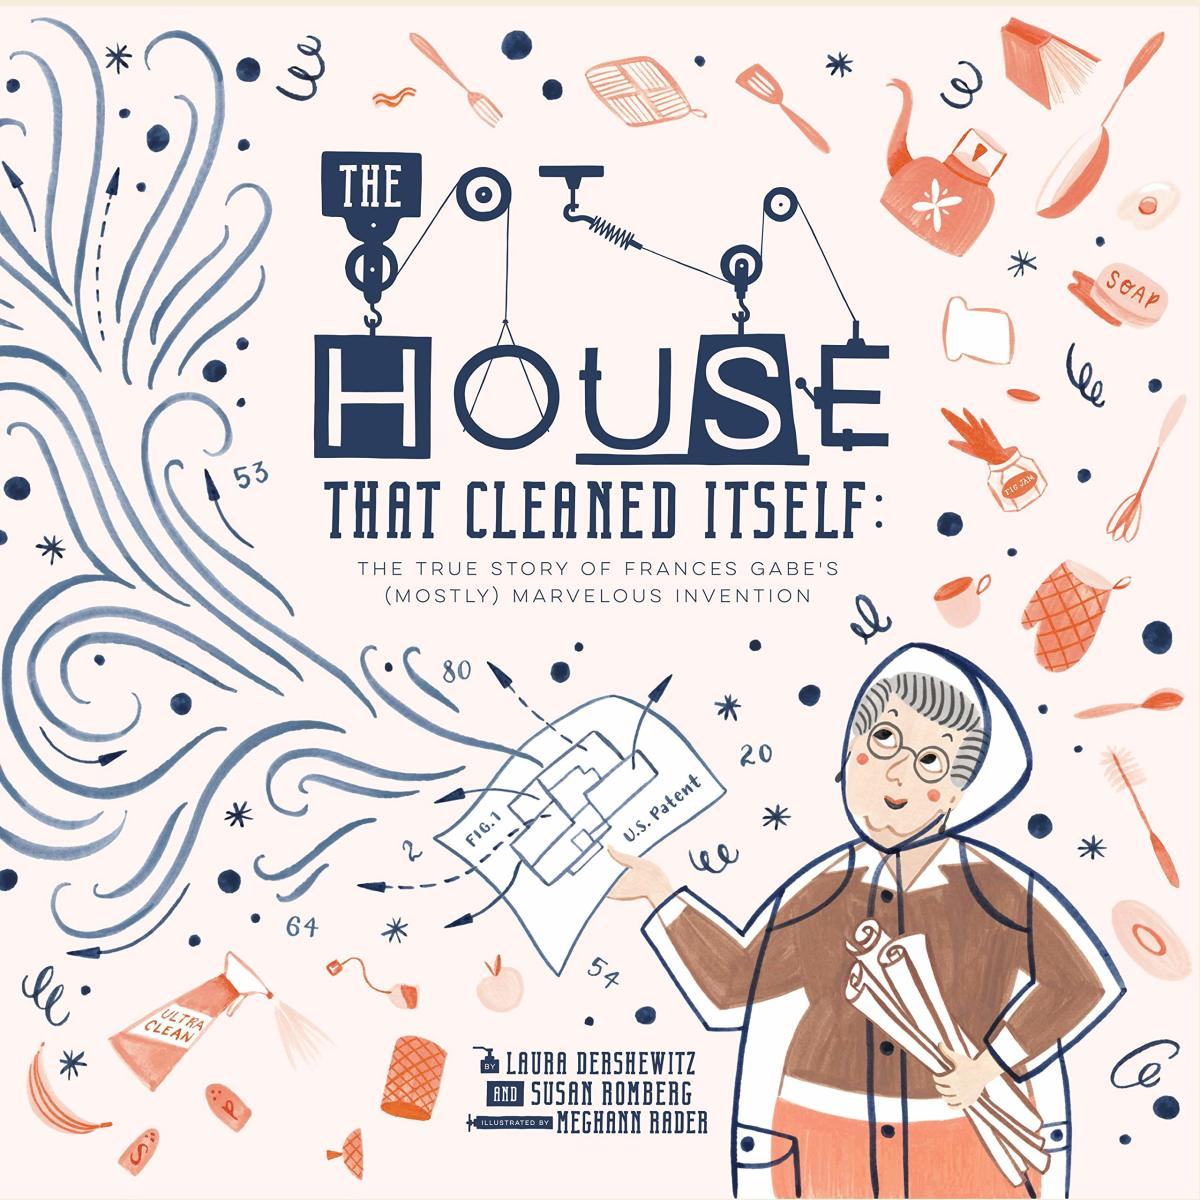 The House That Cleaned Itself: The True Story of Frances Gabe's (Mostly) Marvelous Invention by Laura Dershewitz and Susan Romberg